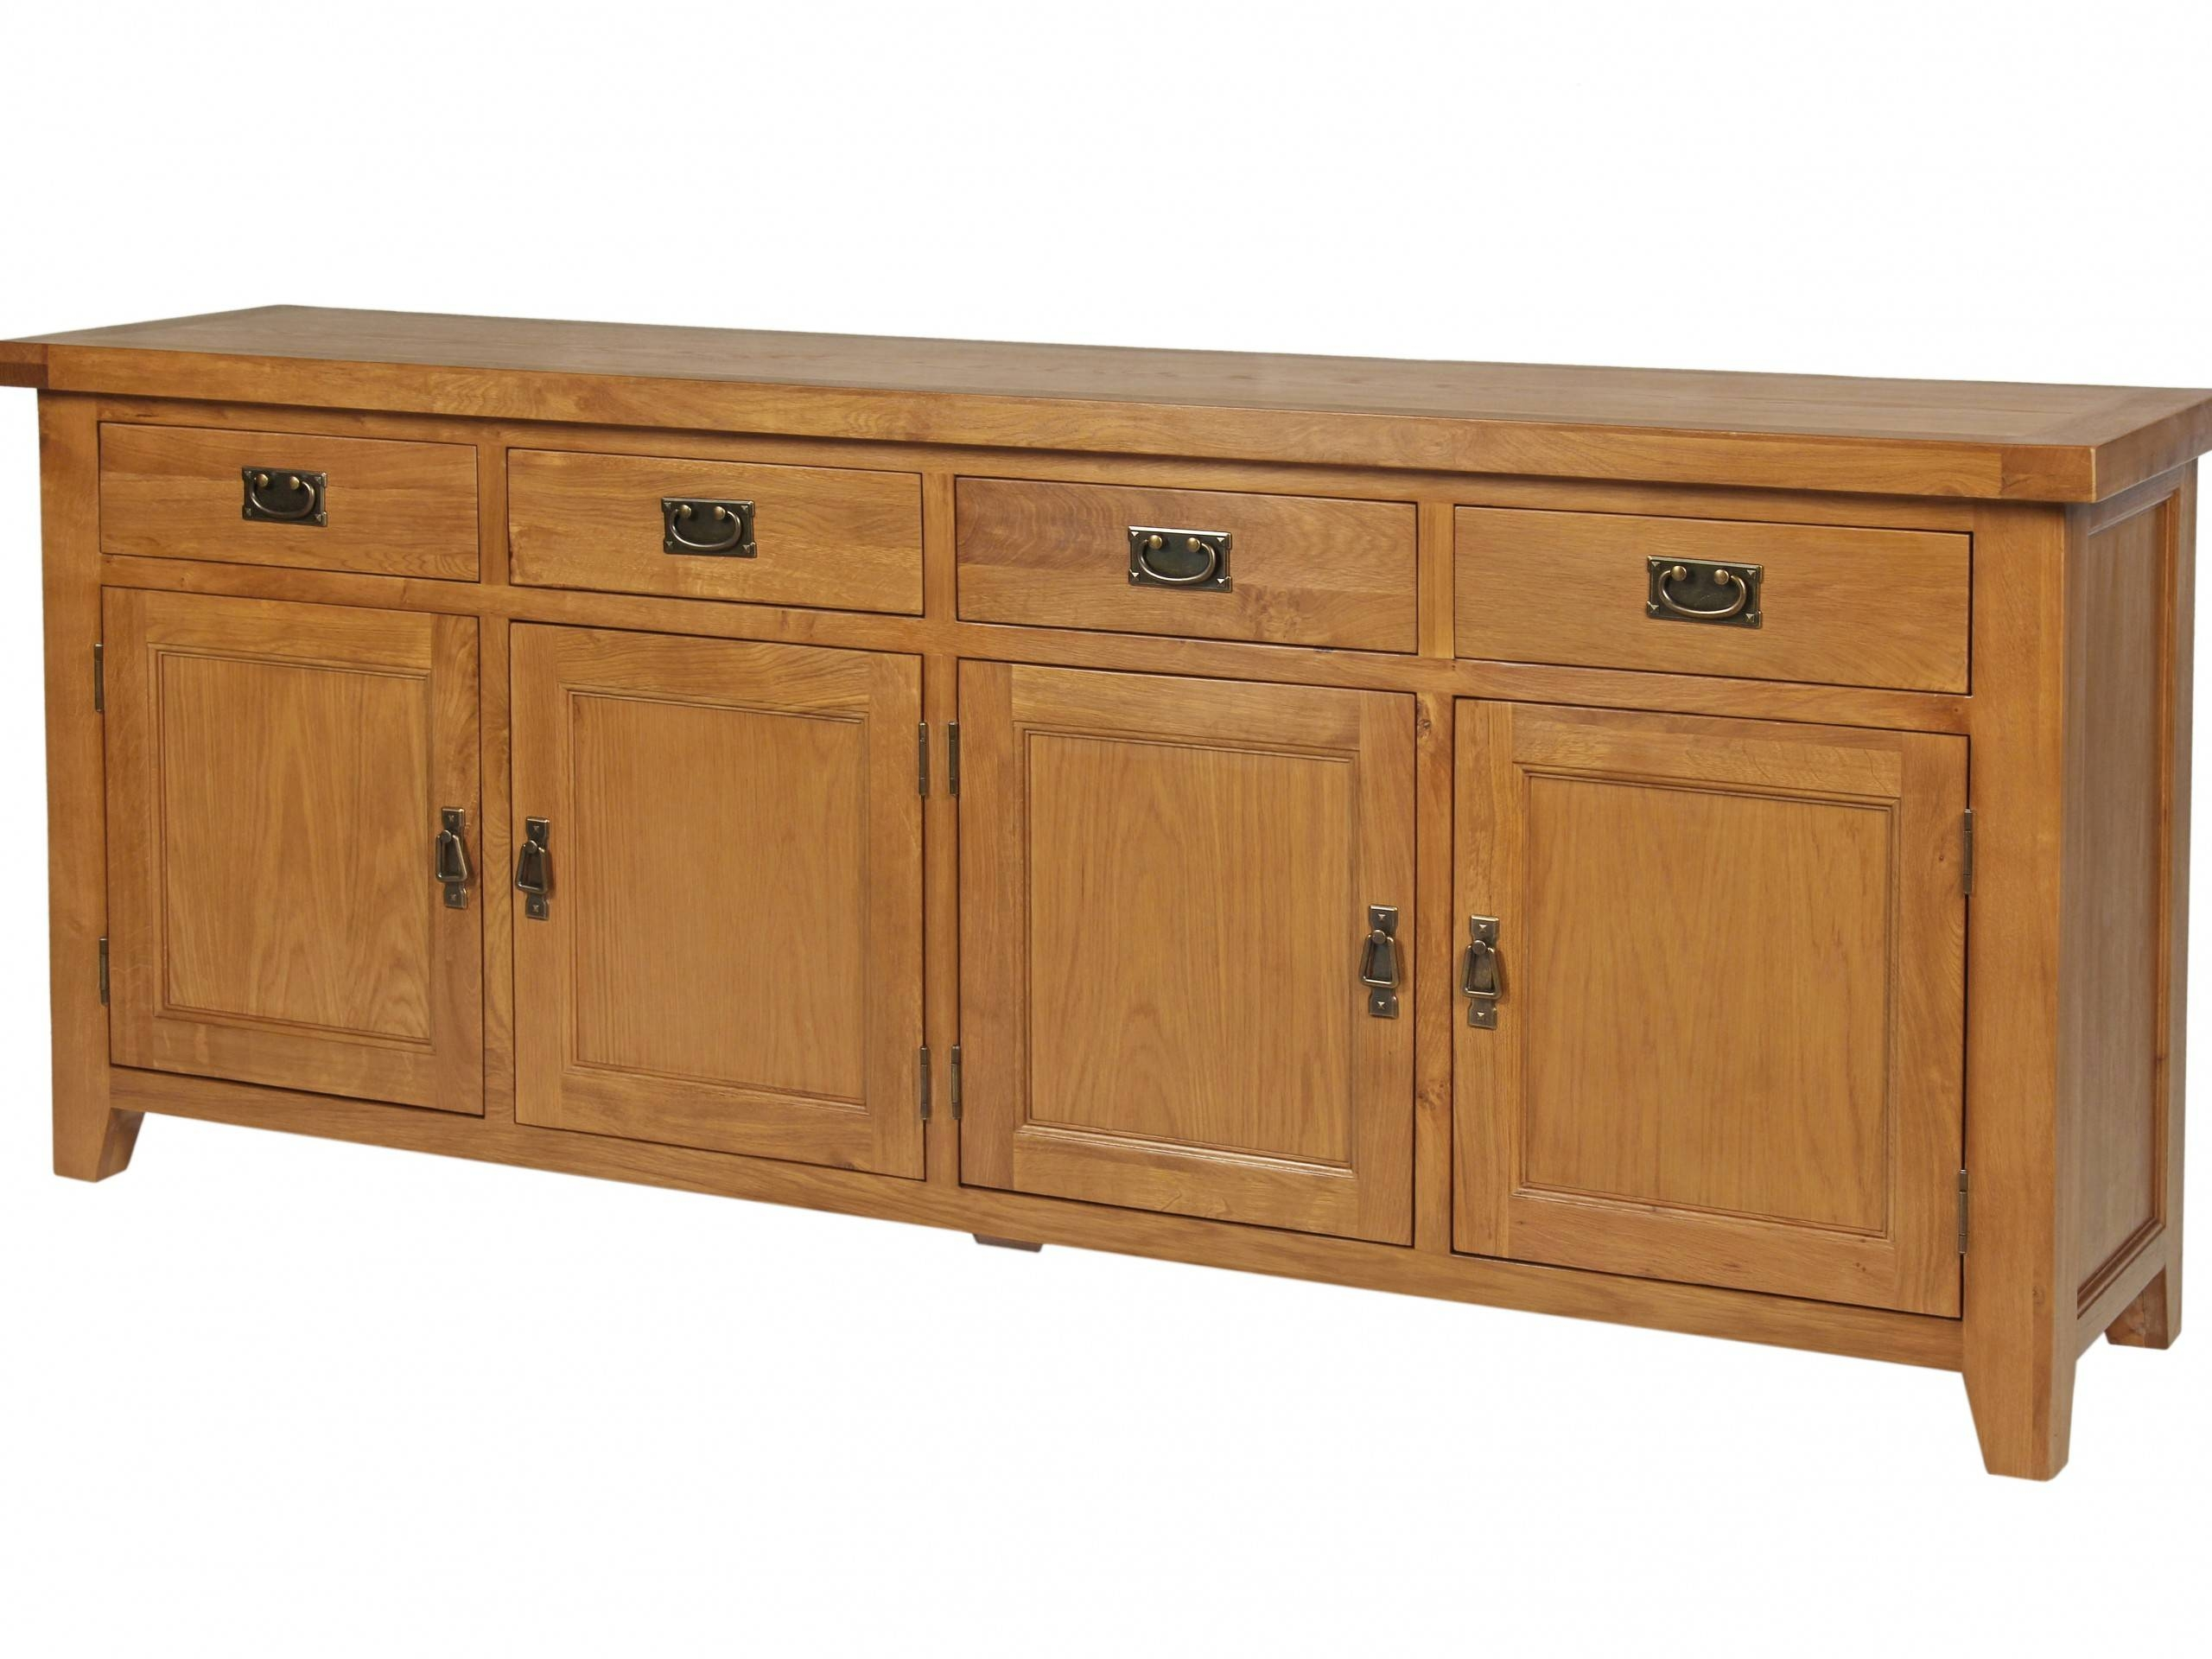 200Cm Large Country Oak Sideboard | Large Oak Sideboard Regarding Oak Sideboards For Sale (View 1 of 30)